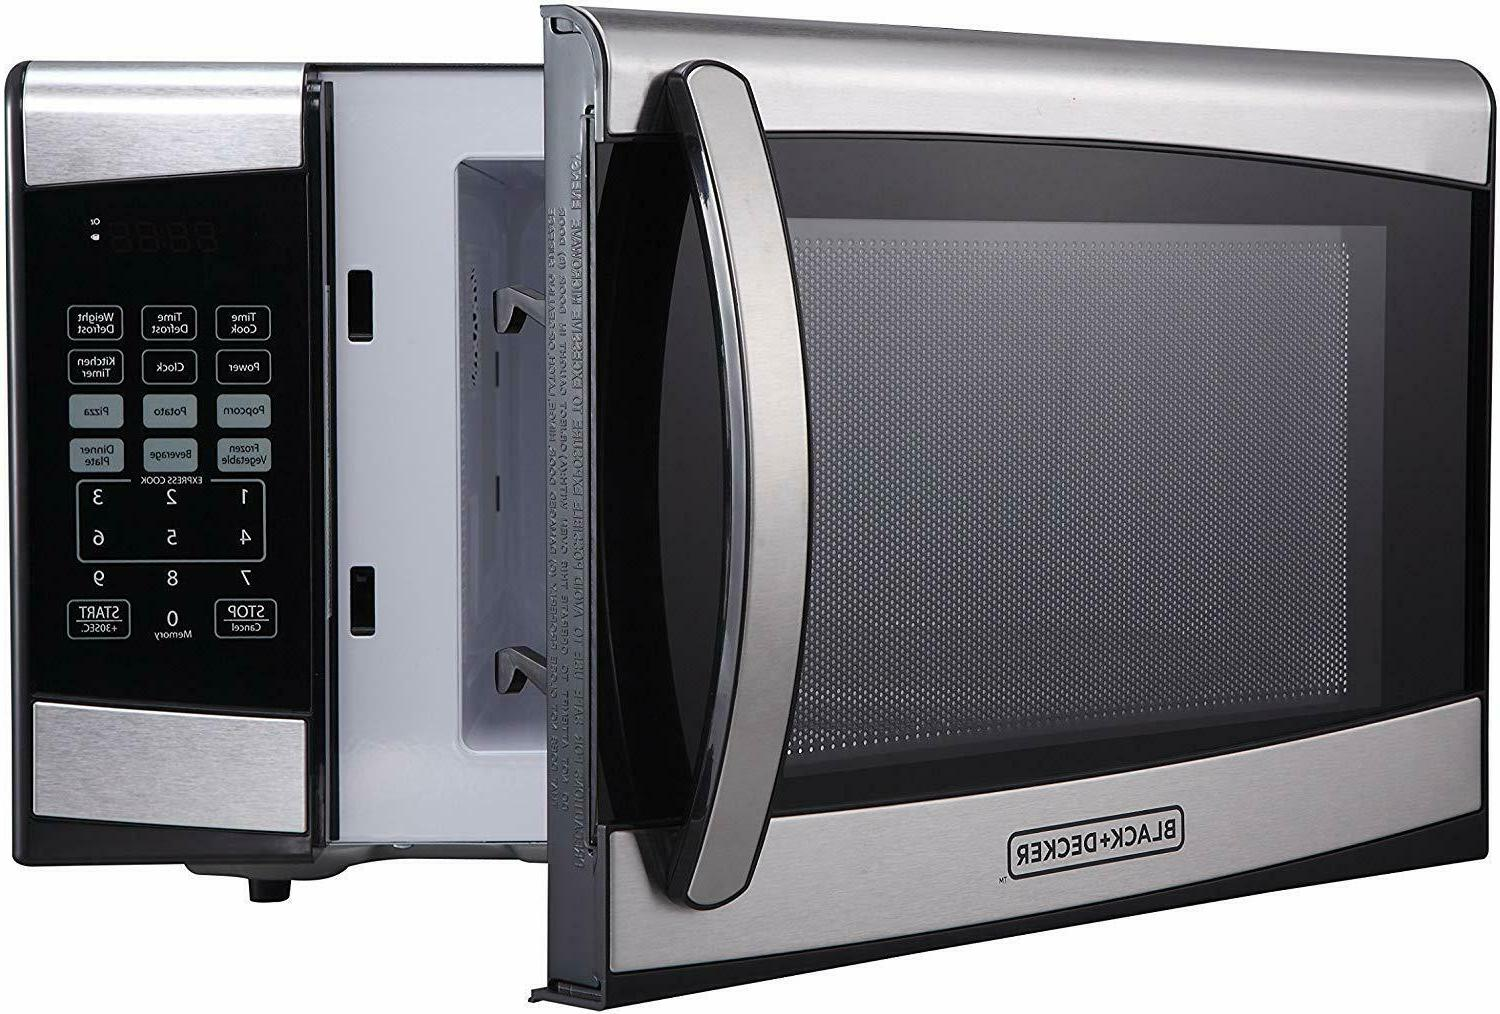 BLACK+DECKER 0.9 cu ft 900W Oven - Stainless